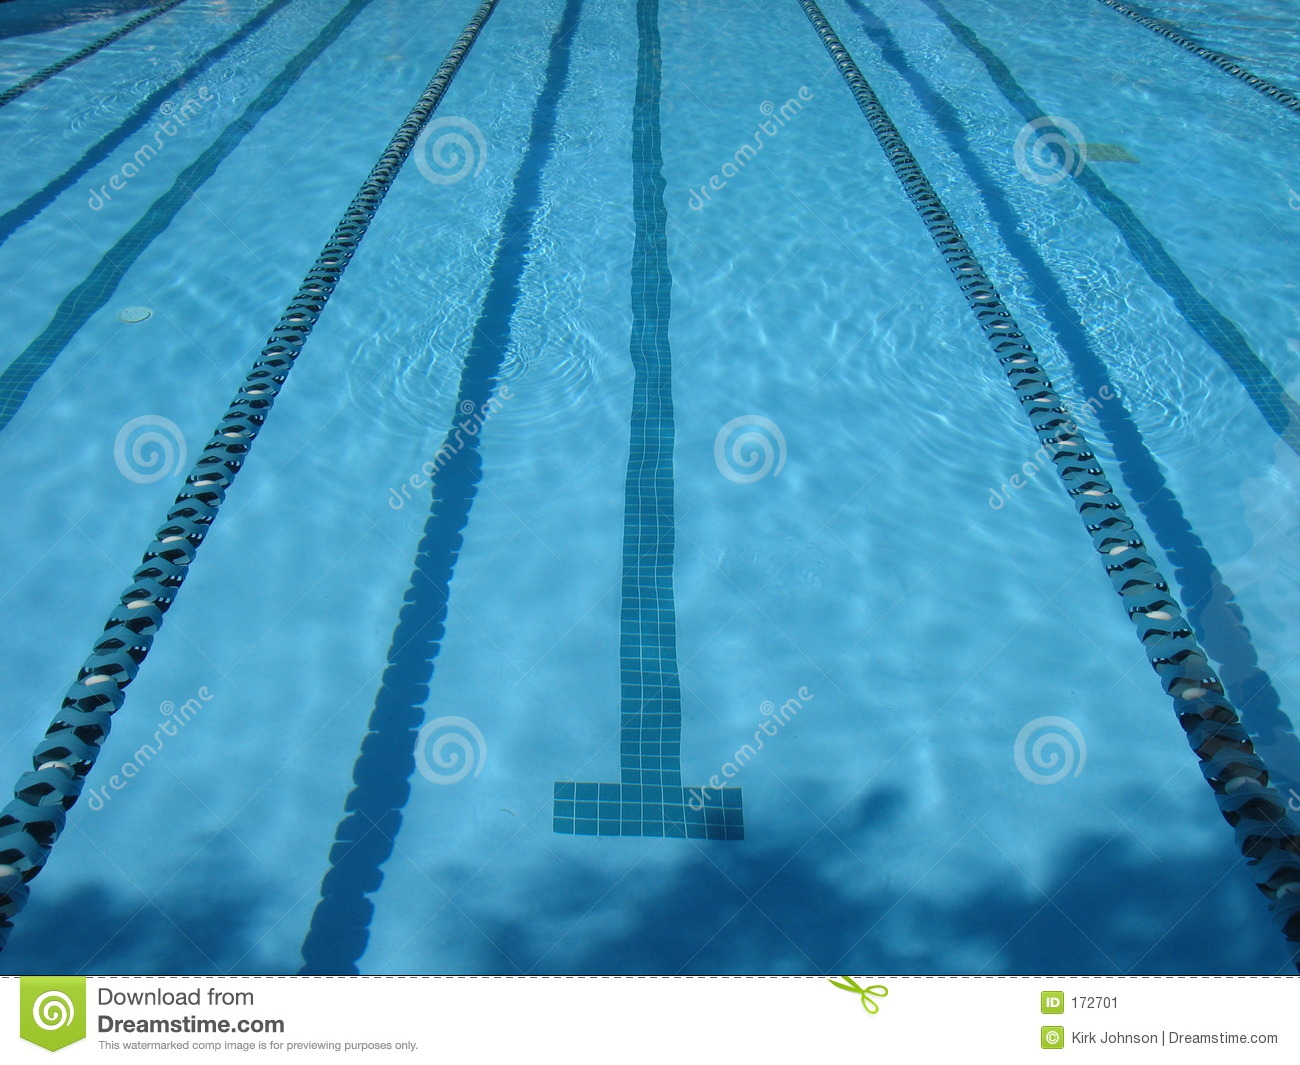 Swimming Pool Lap Lanes Stock Image - Image: 172701